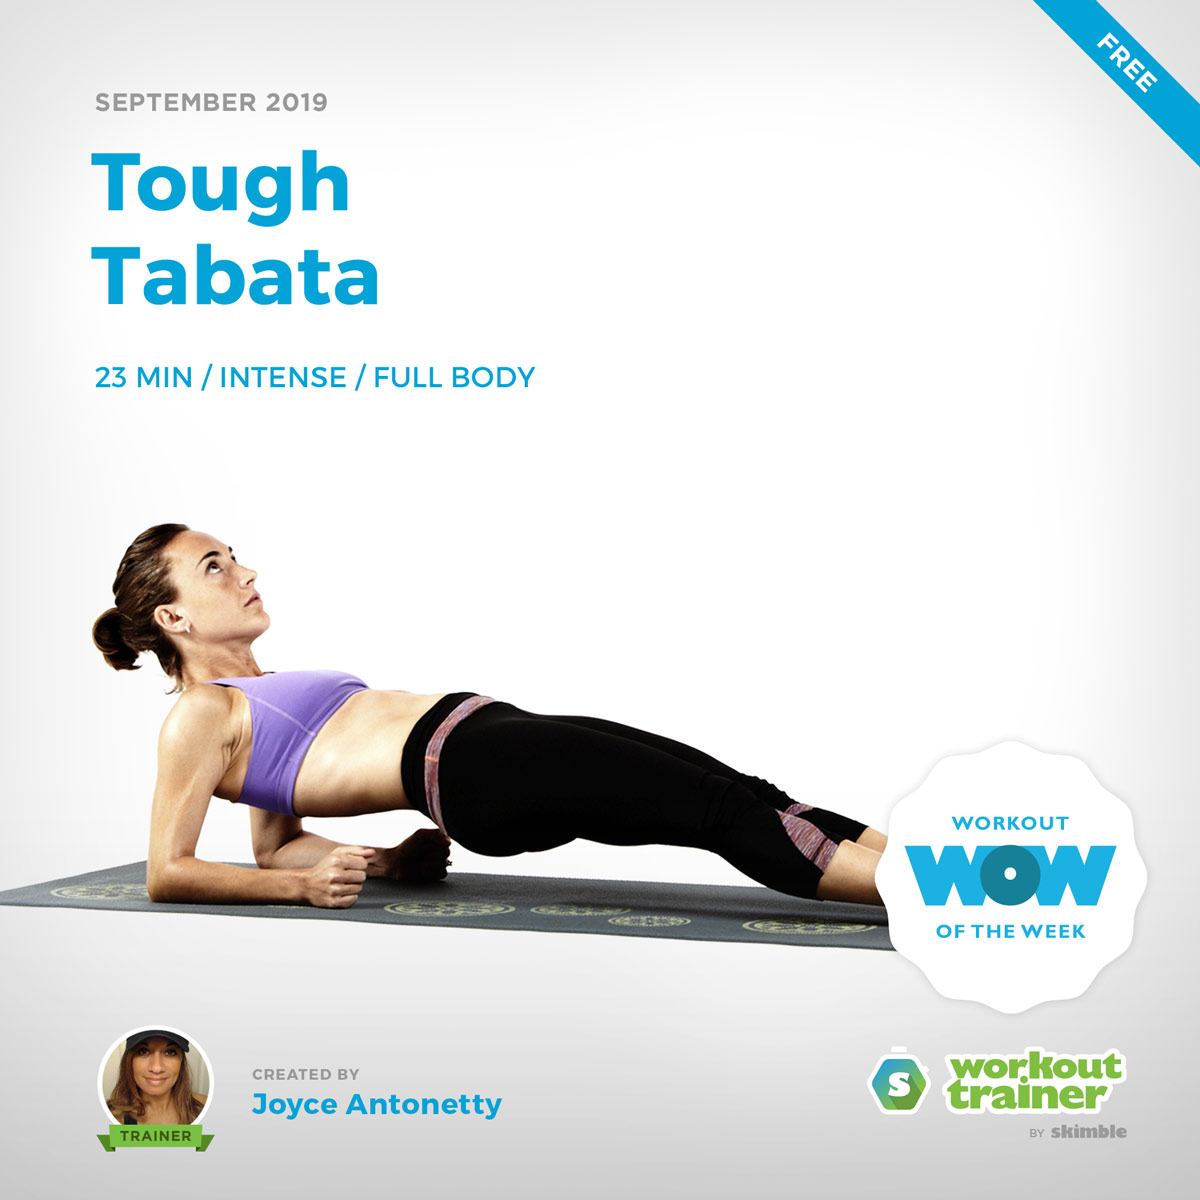 Workout Trainer by Skimble: Free Workout of the Week: Tough Tabata by Joyce Antonetty